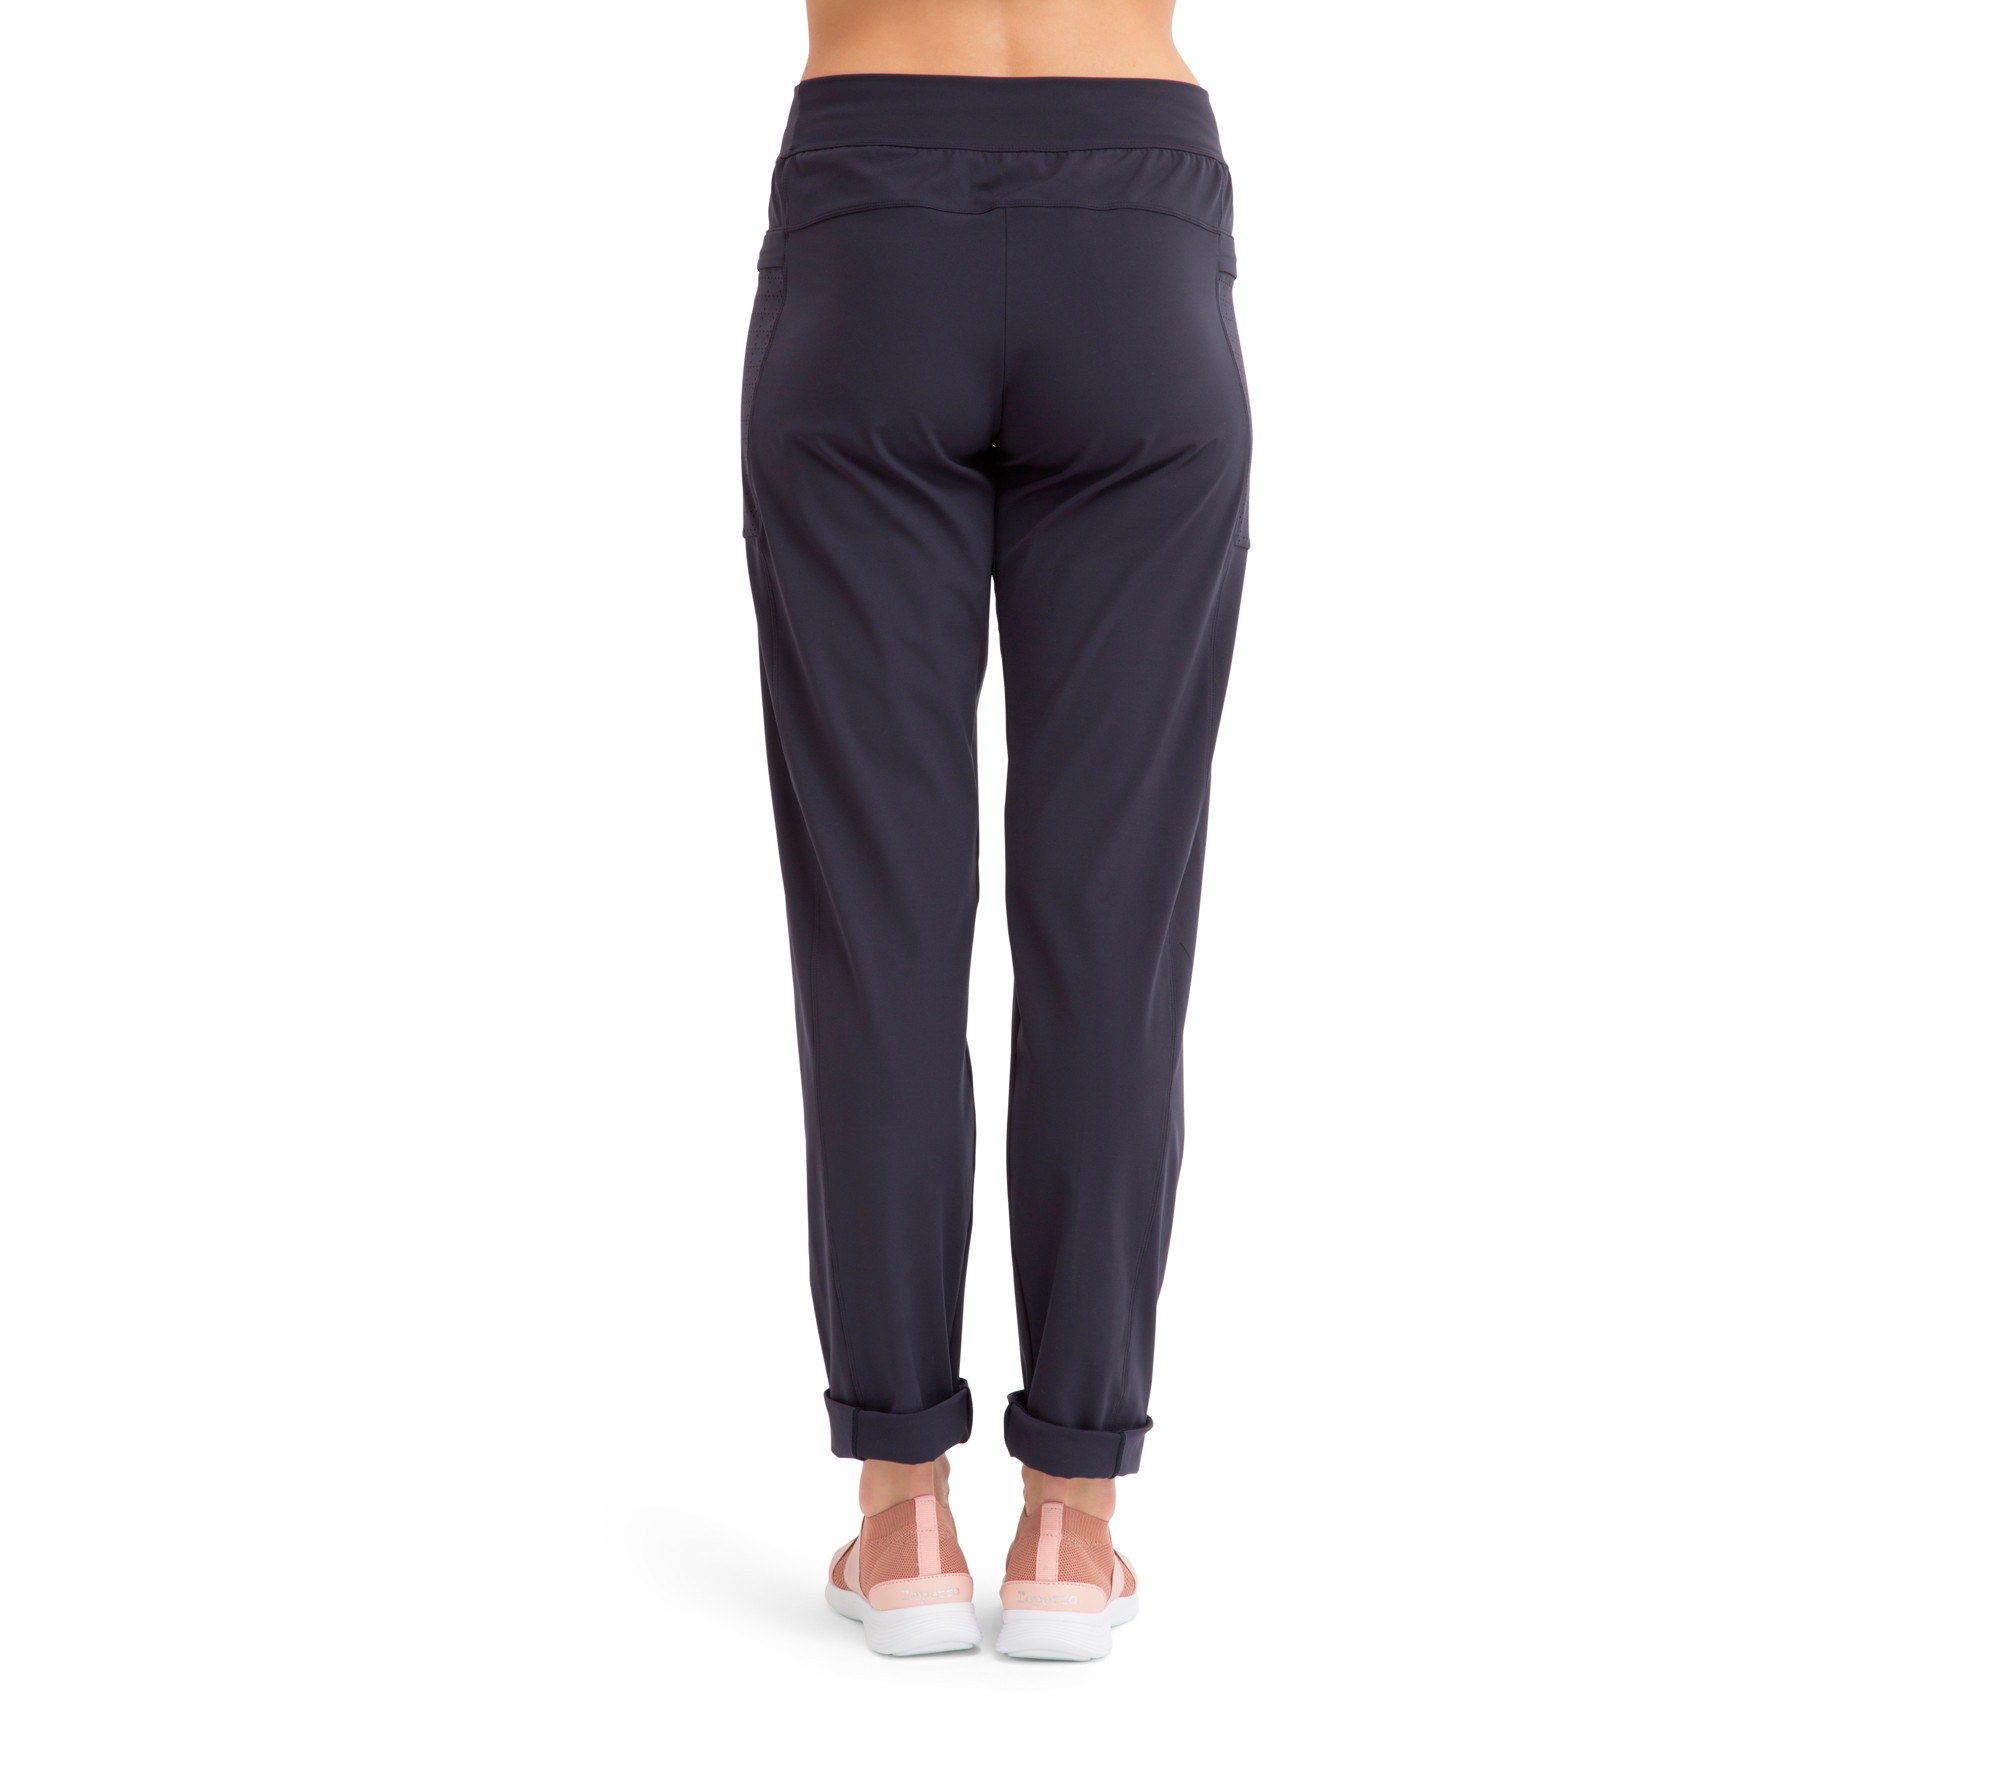 High stretch technical pants